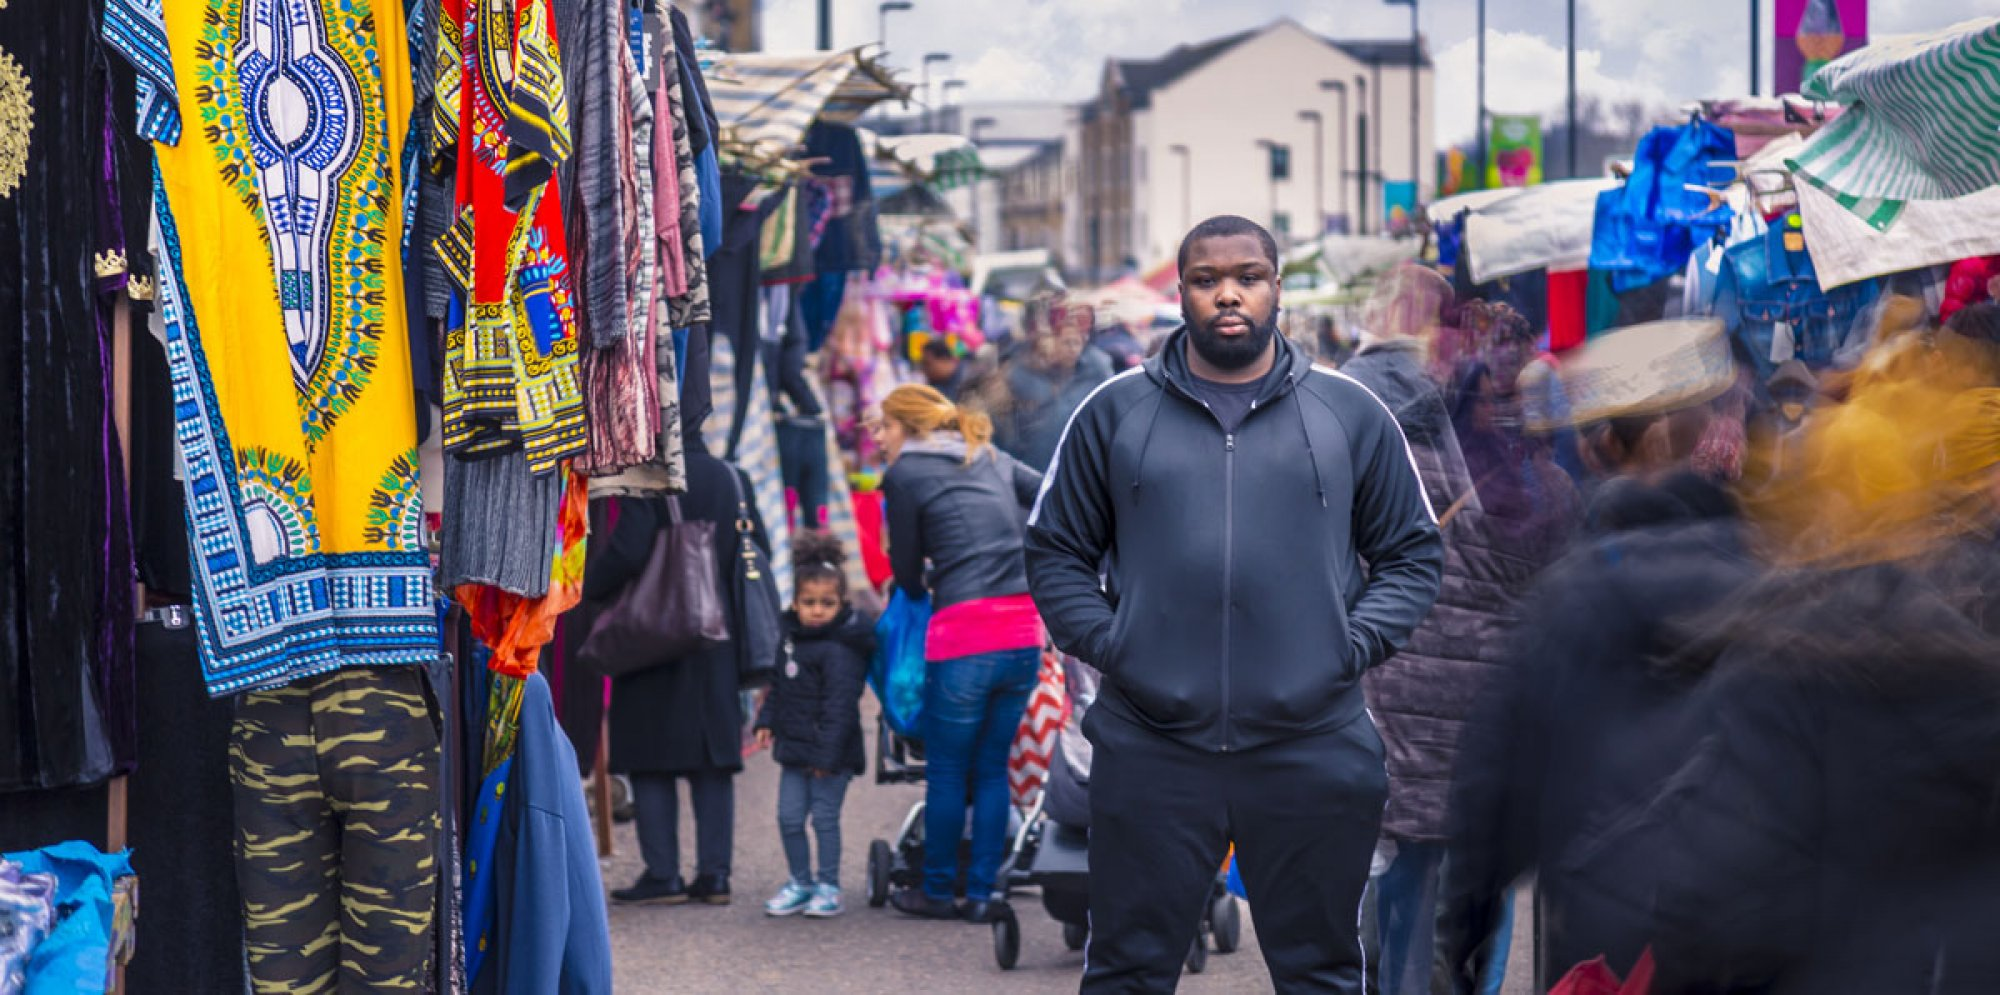 Man standing in a market